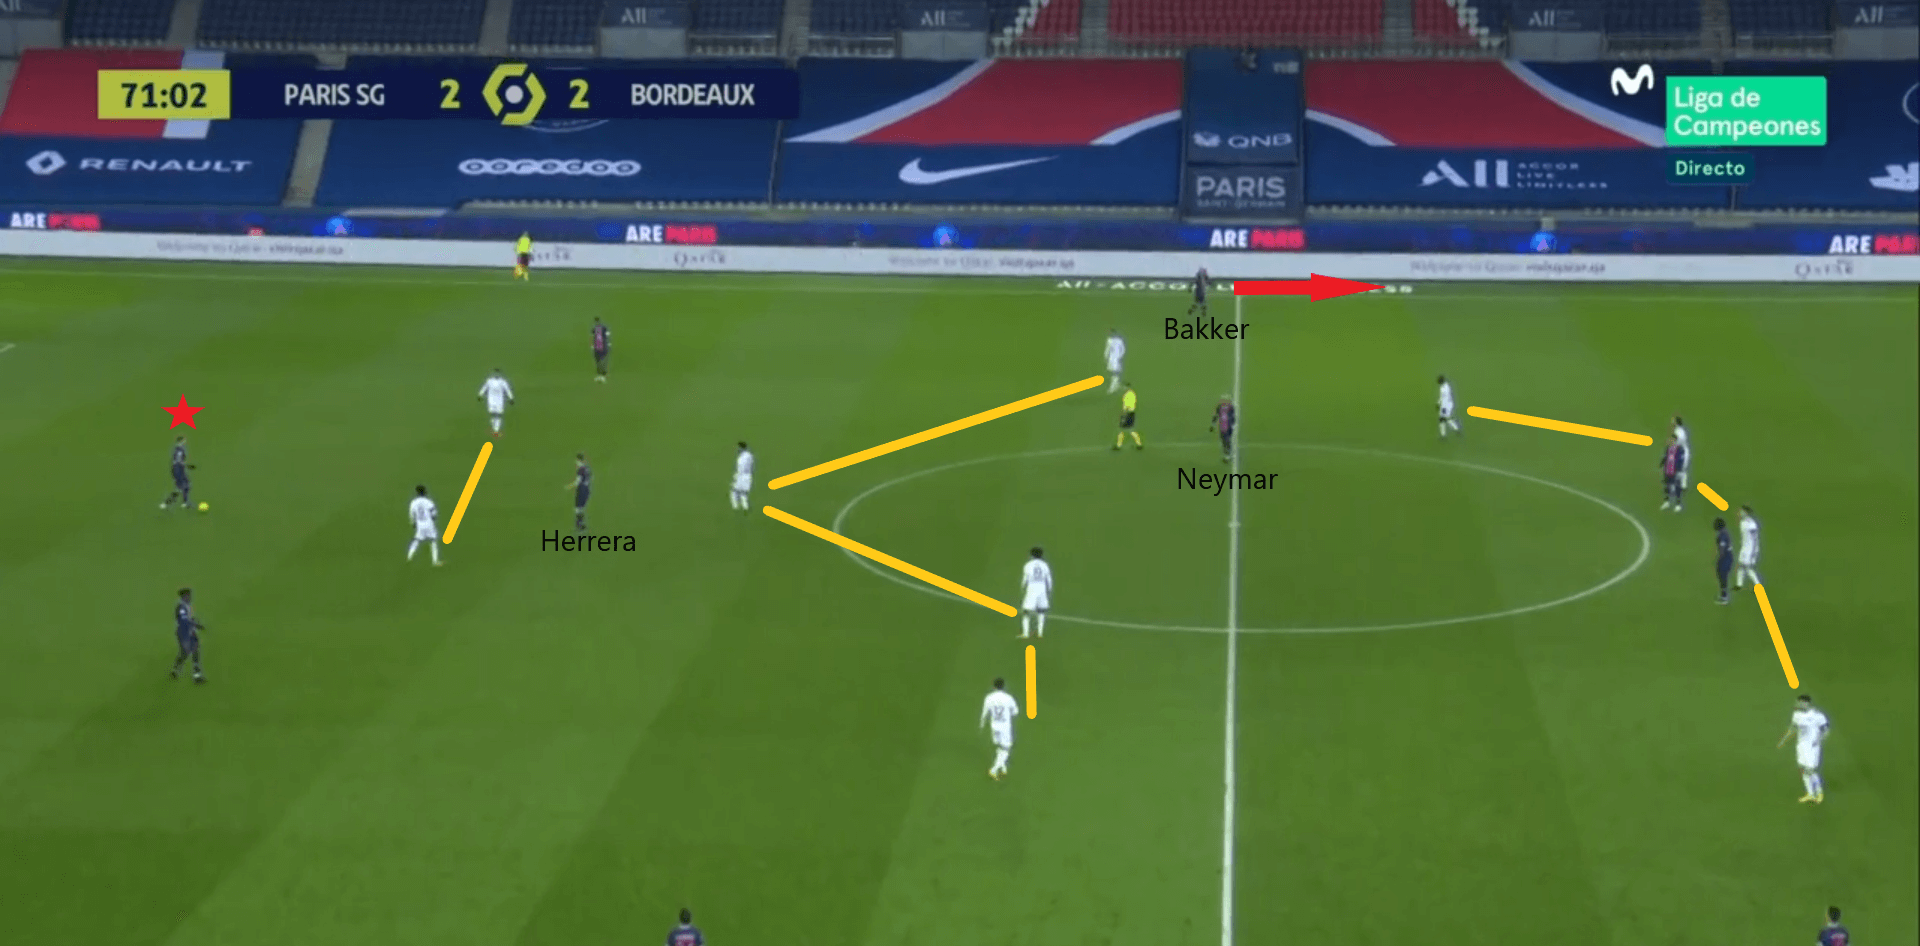 Ligue 1 2020/21: PSG vs Bordeaux - tactical analysis tactics